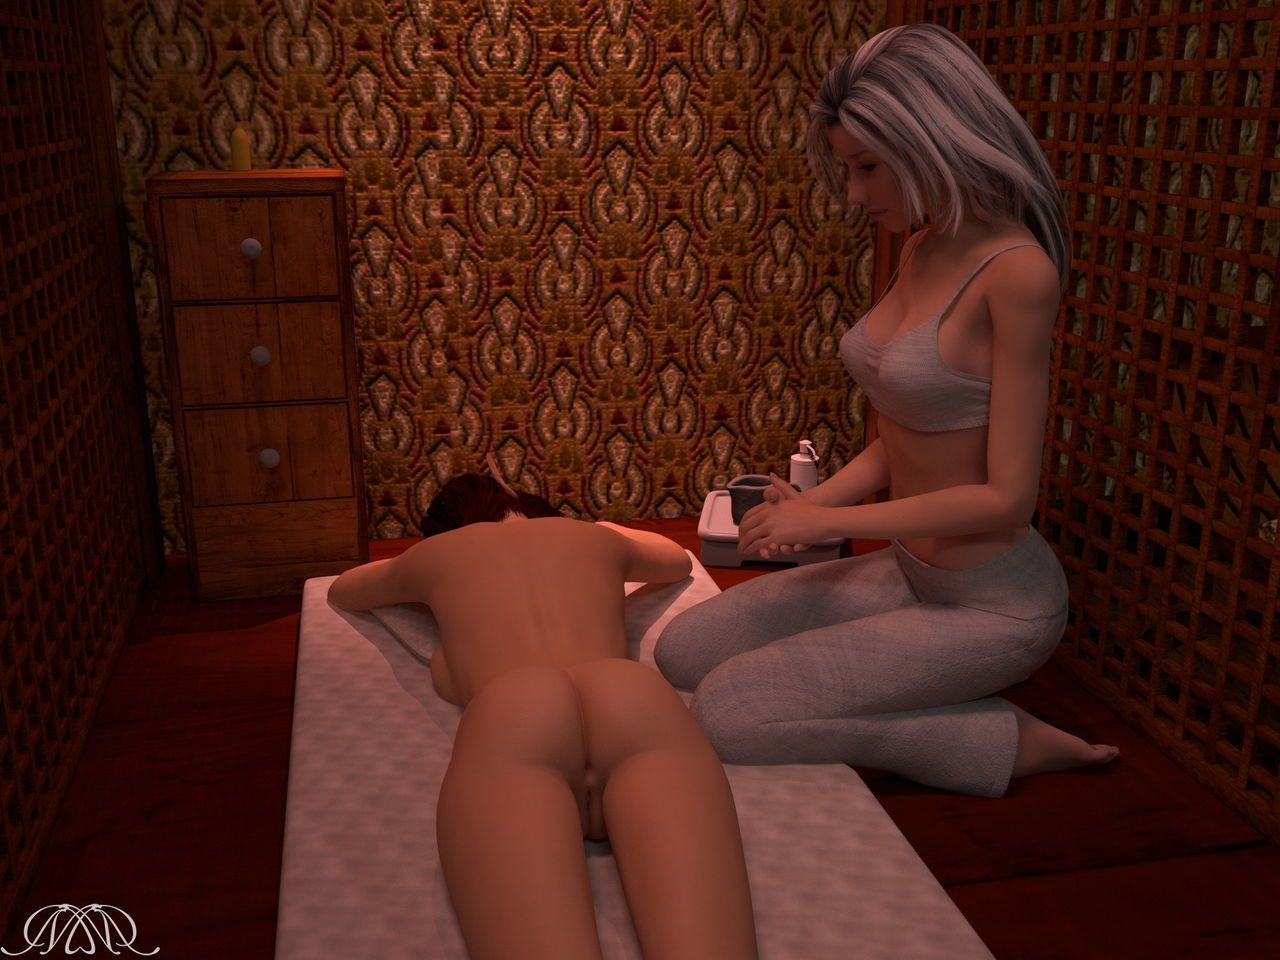 [Morfium] Afterwork Massage - part 5